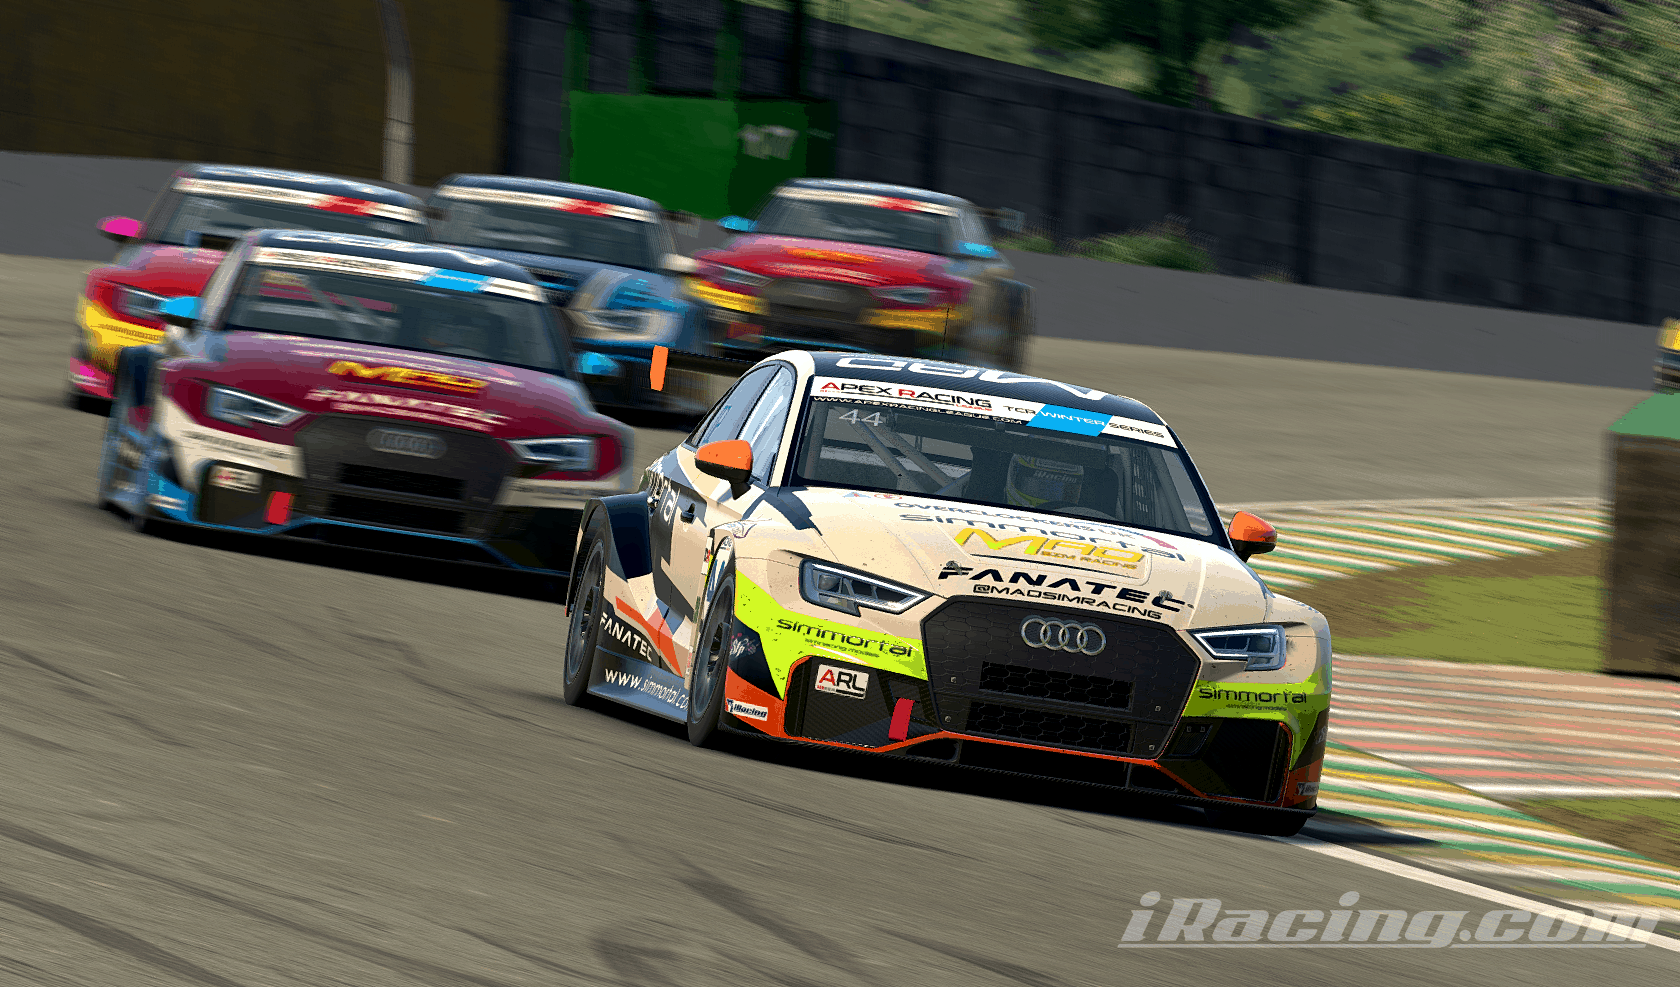 ARL - TCR Winter Series 2019/20 Interlagos 10